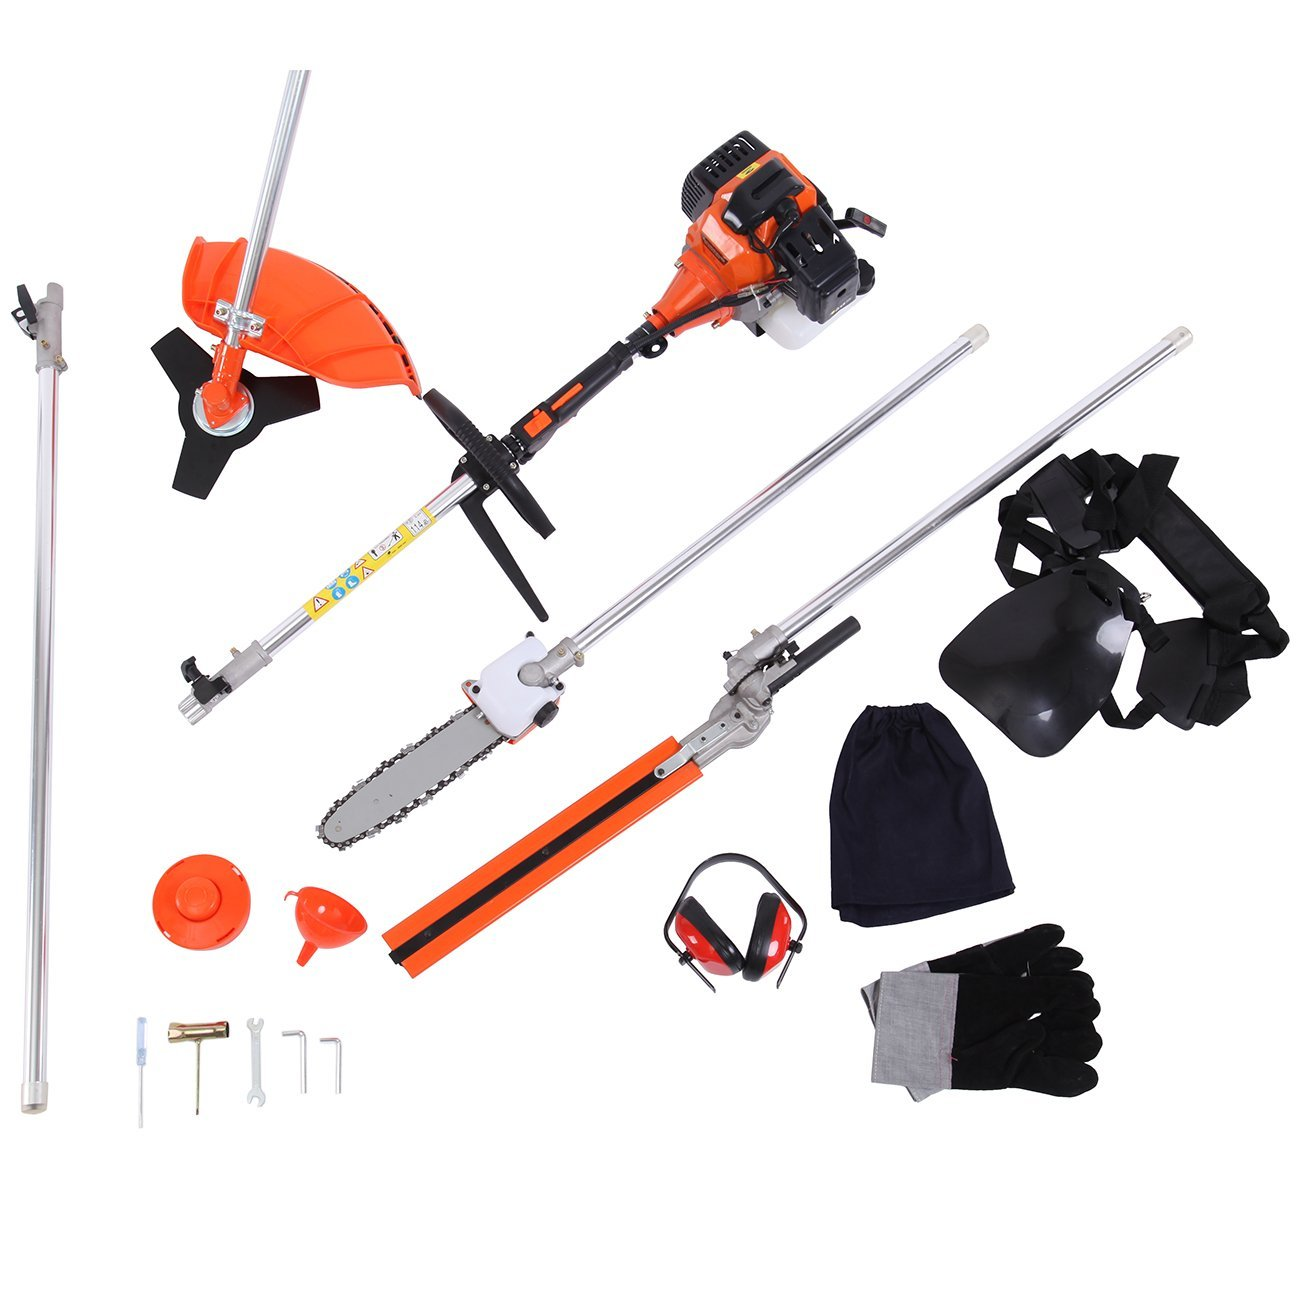 5 in 1 52cc Powerful Petrol Hedge Trimmer Chainsaw Brush ...